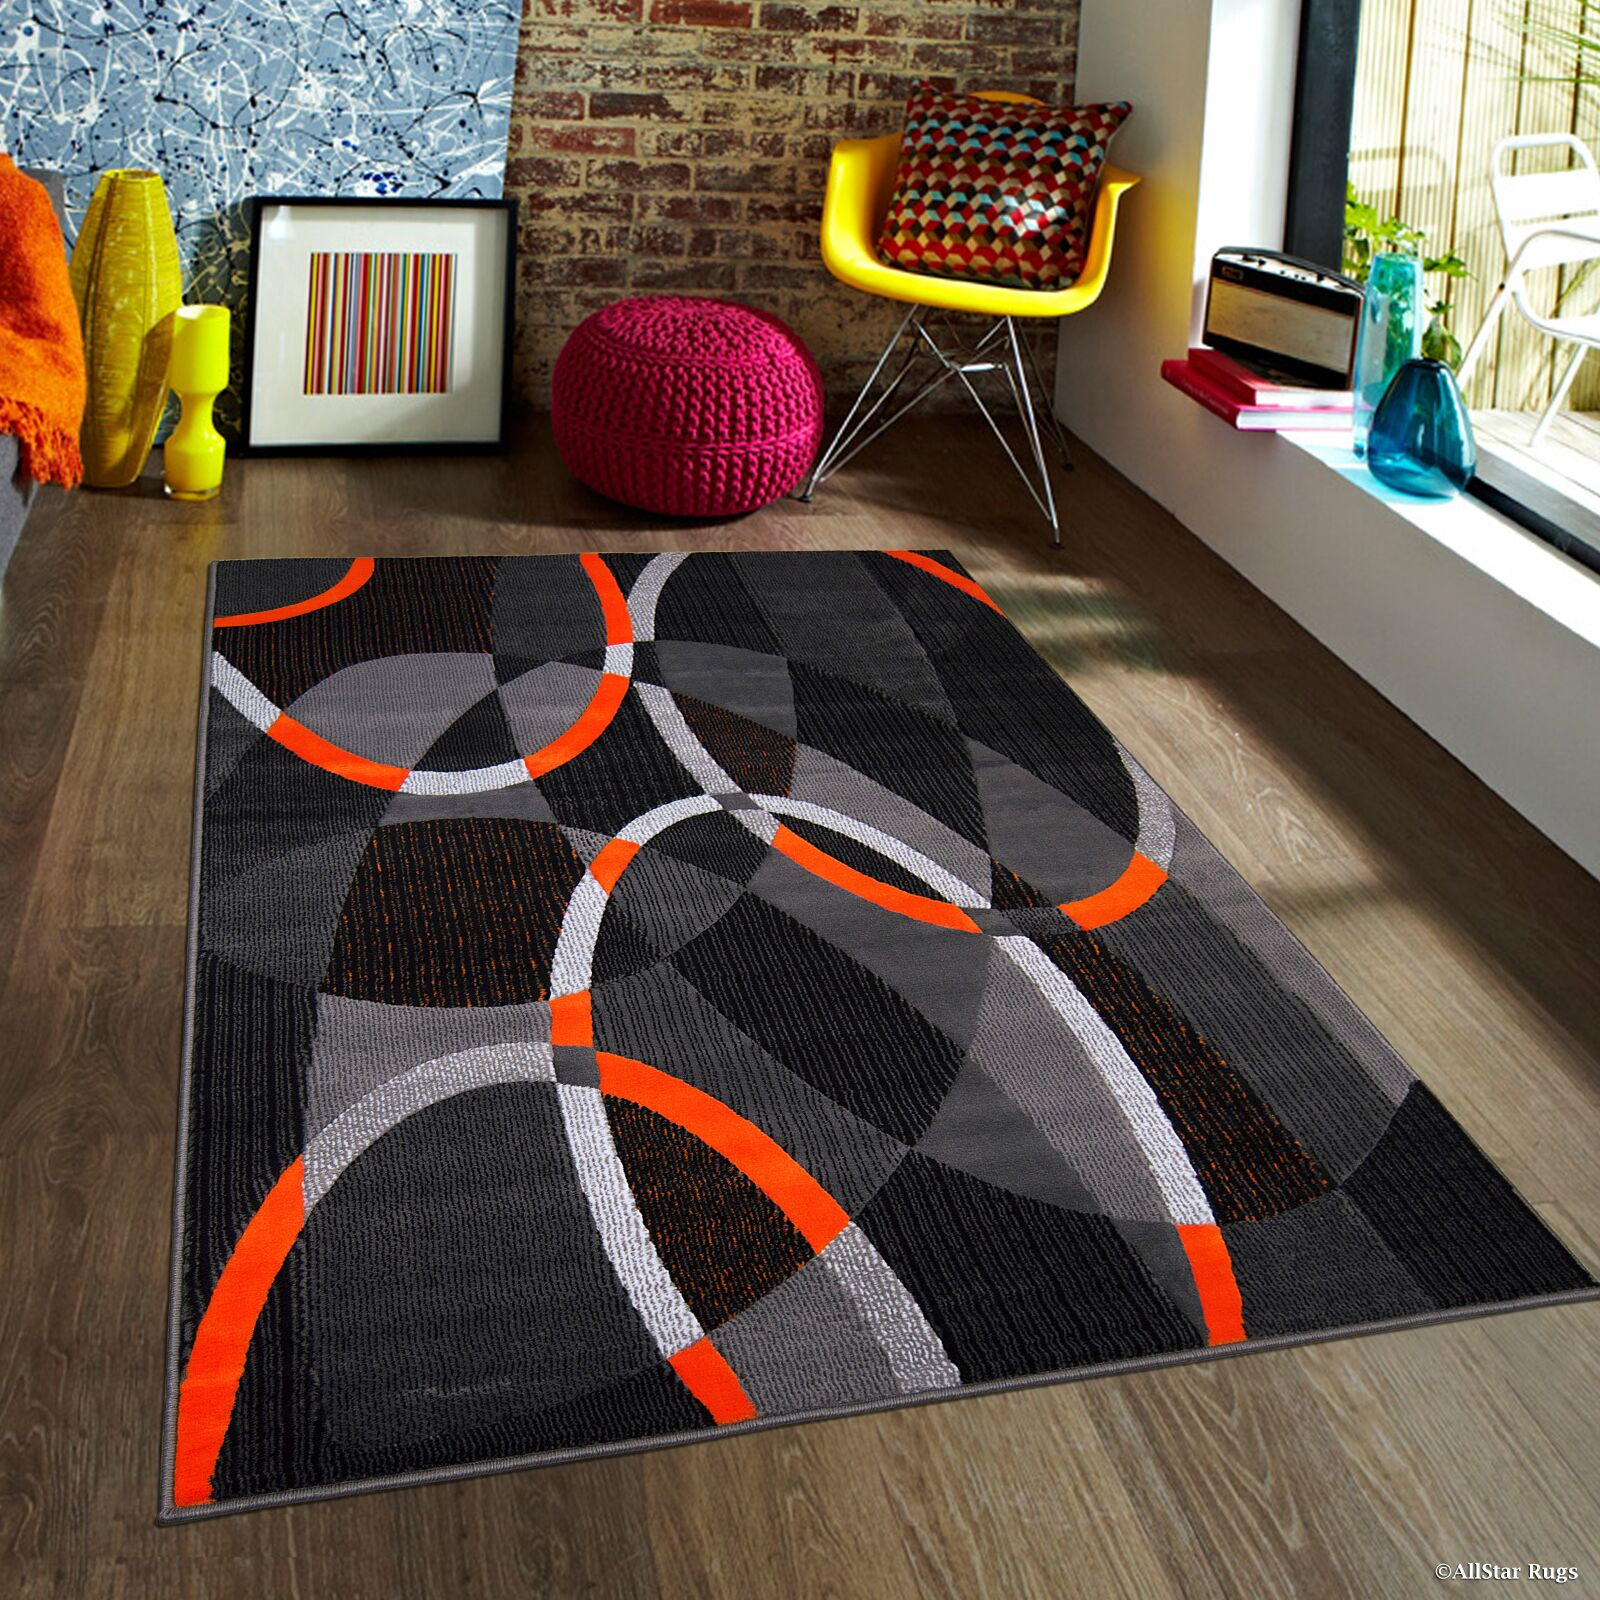 Keeler High Quality Exclusive Drop-Stitch Linear Designed Orange Olefin Area Rug Rug Size: 7'10